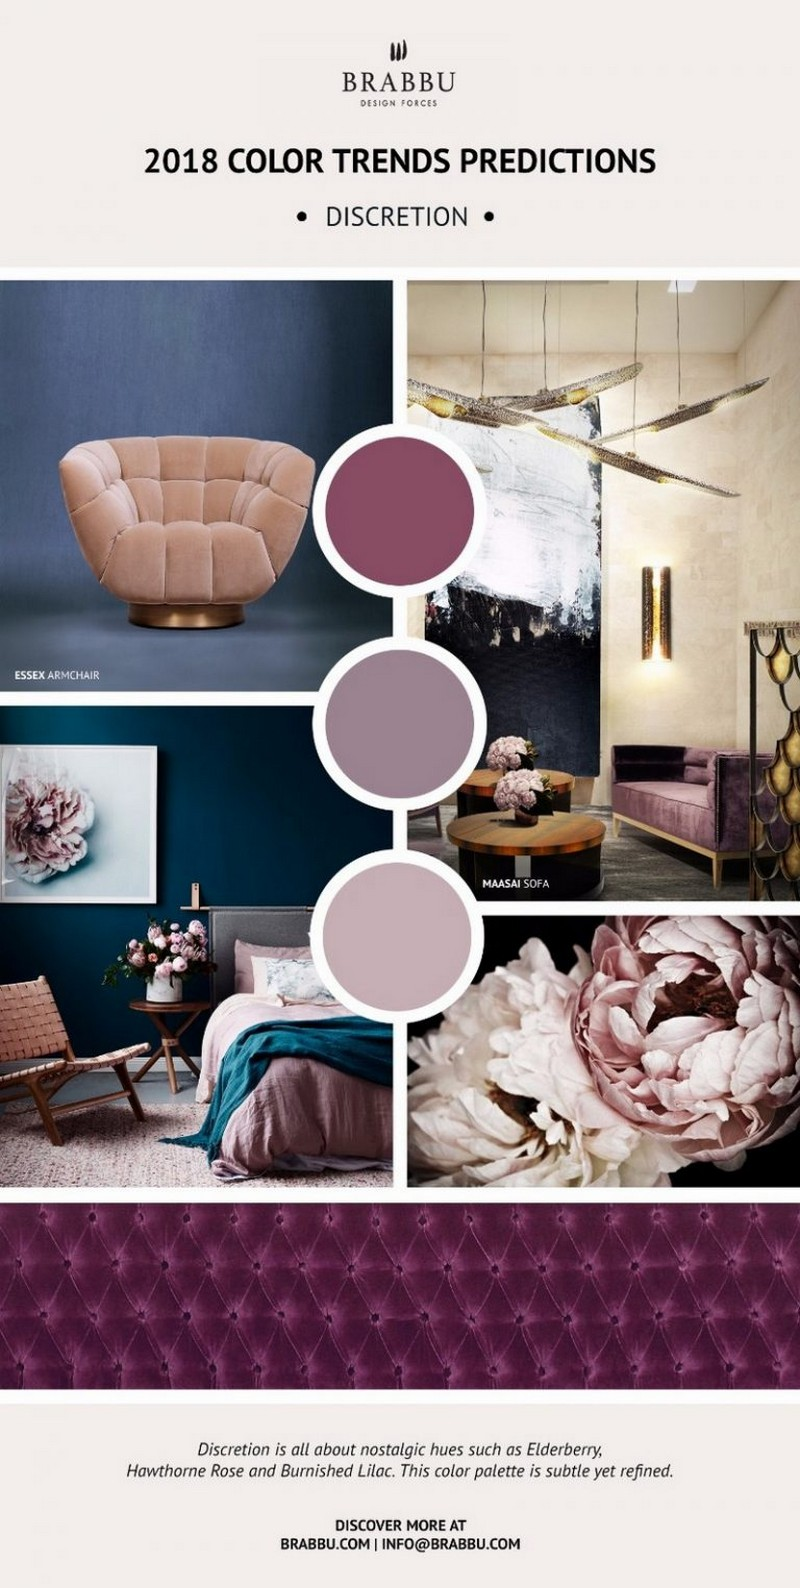 pantone's color trend predictions for 2018 Discover More About Pantone's Color Trend Predictions for 2018 Discover More About Pantones Color Trend Predictions for 2018 2